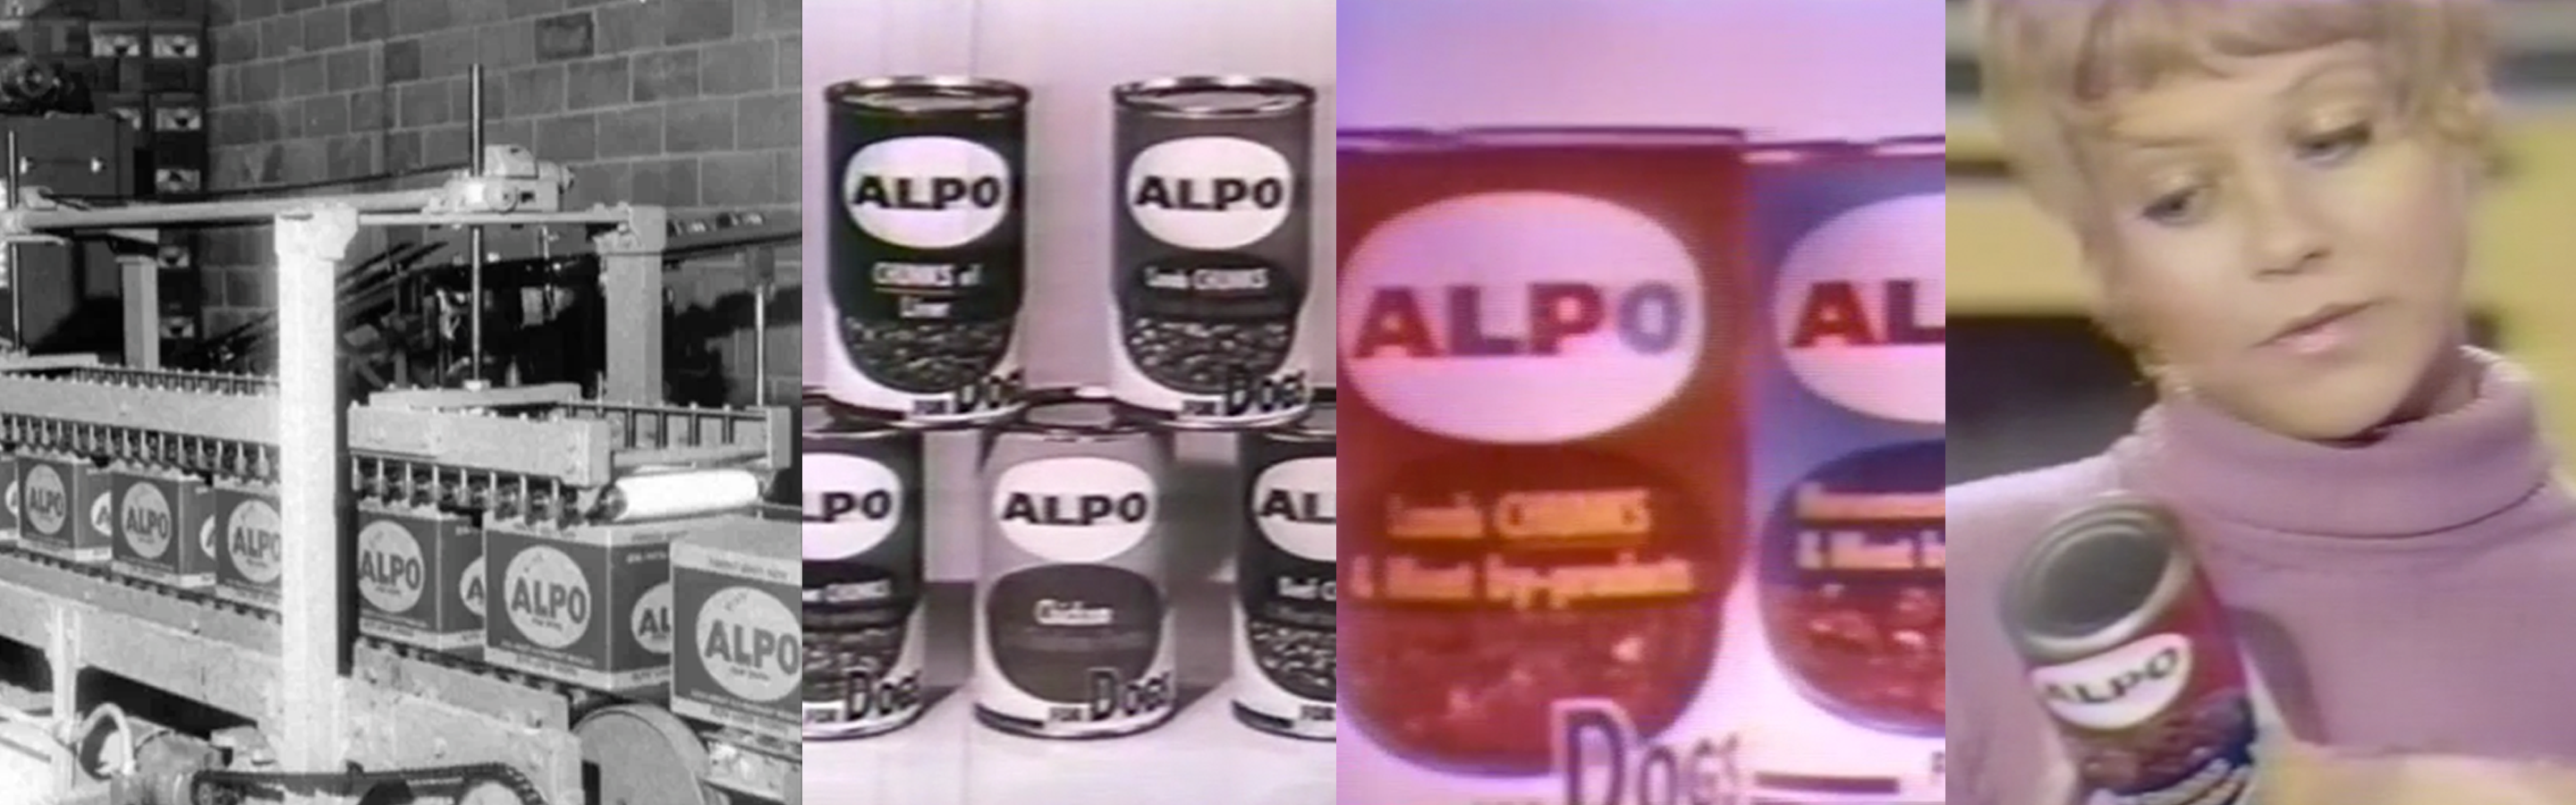 Alpo-Dog-Food-Cans.png